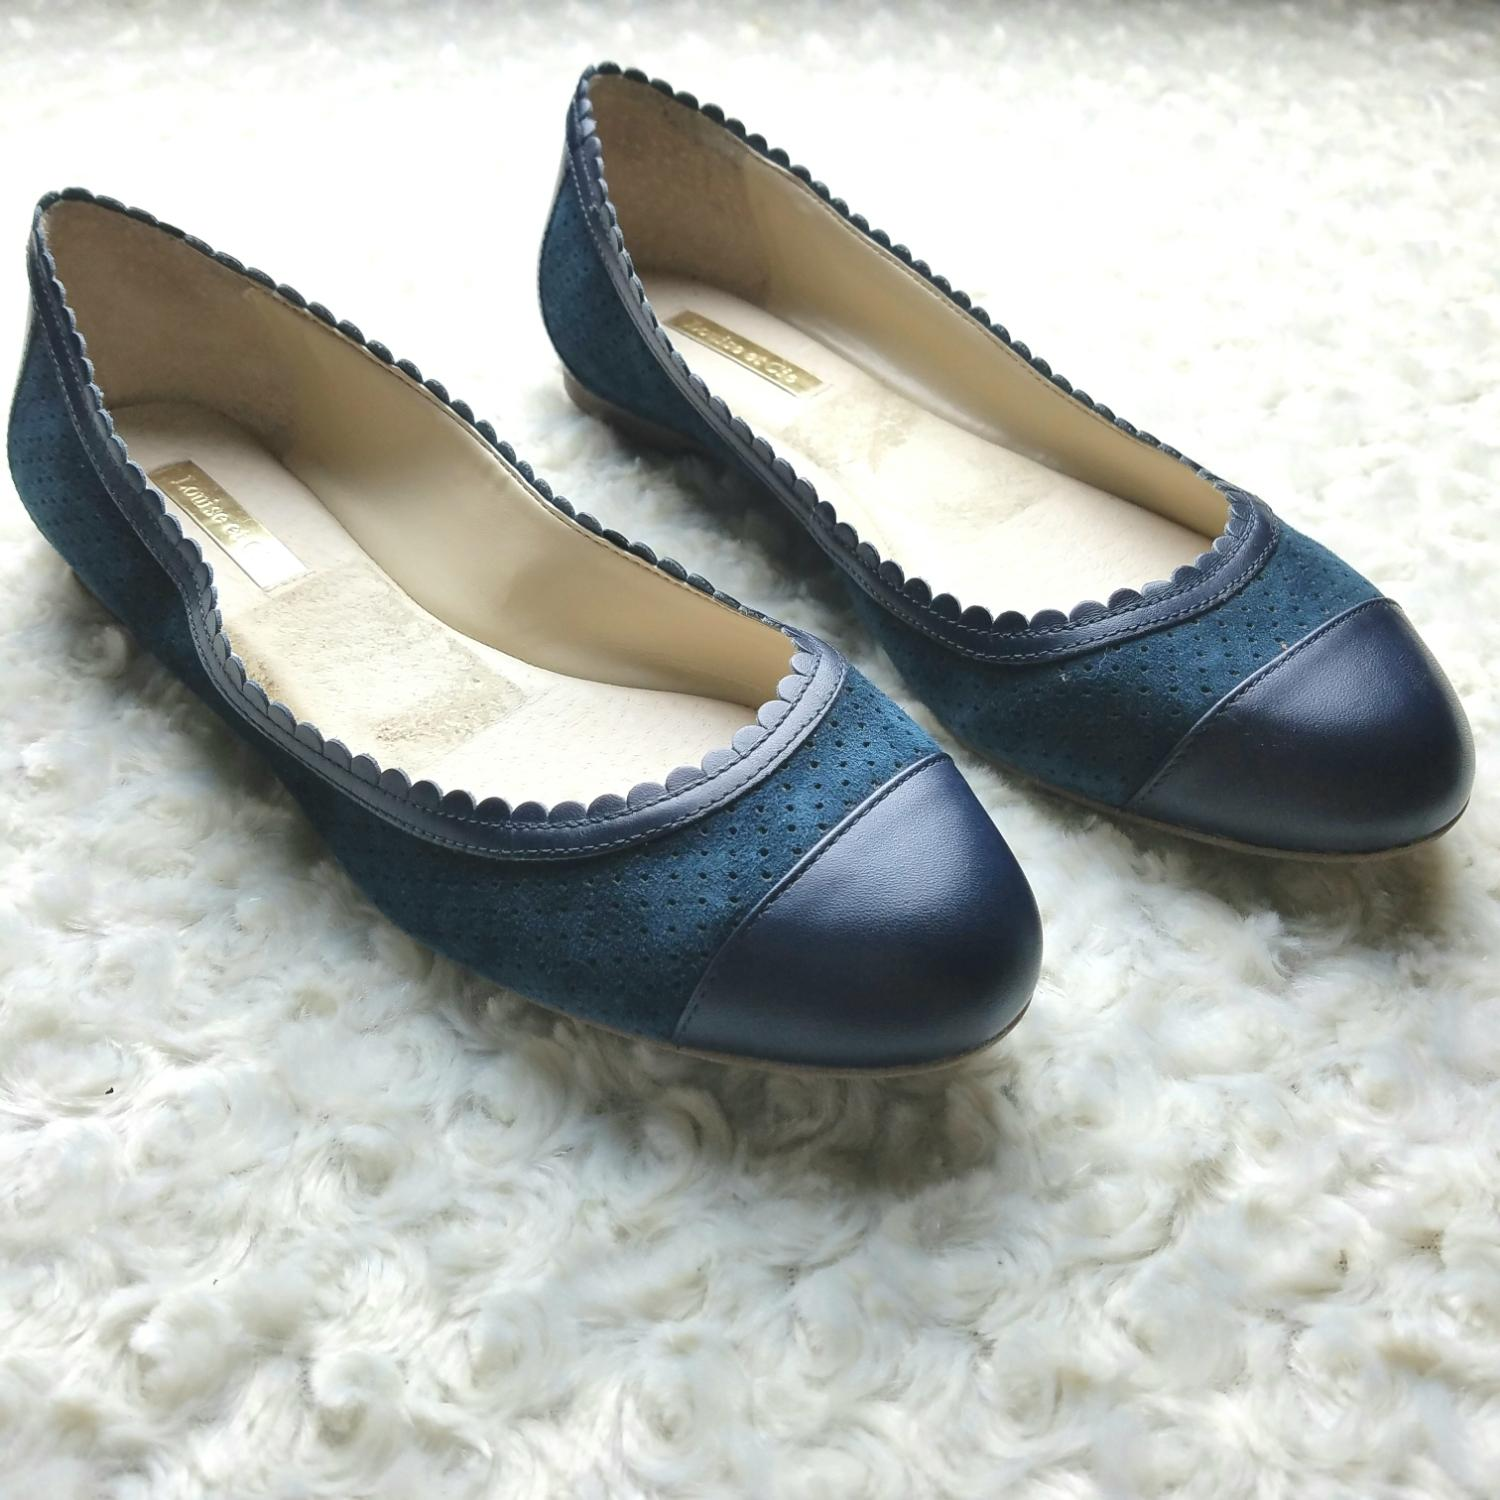 Louise et Cie Navy Ballet Flats Size US 8.5 Regular (M, B)